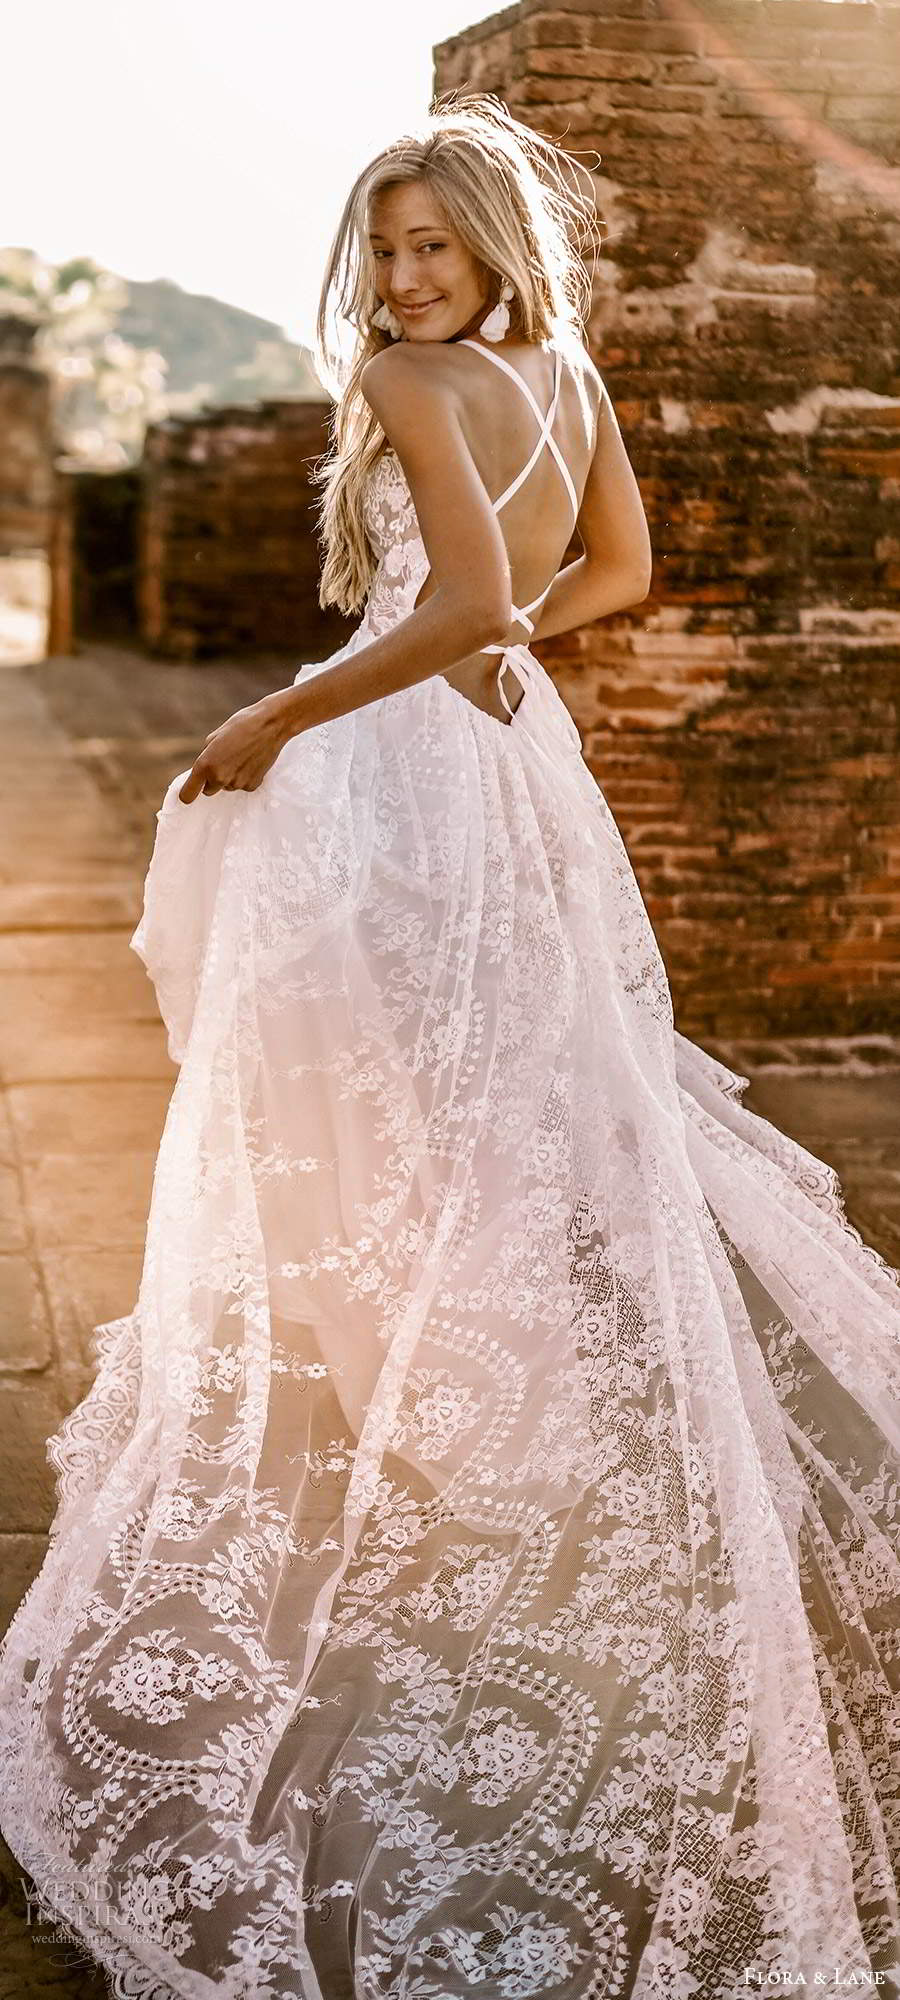 flora and lane 2019 bridal sleeveless straps sweetheart neckline fully embellished lace boho romantic a line ball gown wedding dress open back chapel train (1) bv